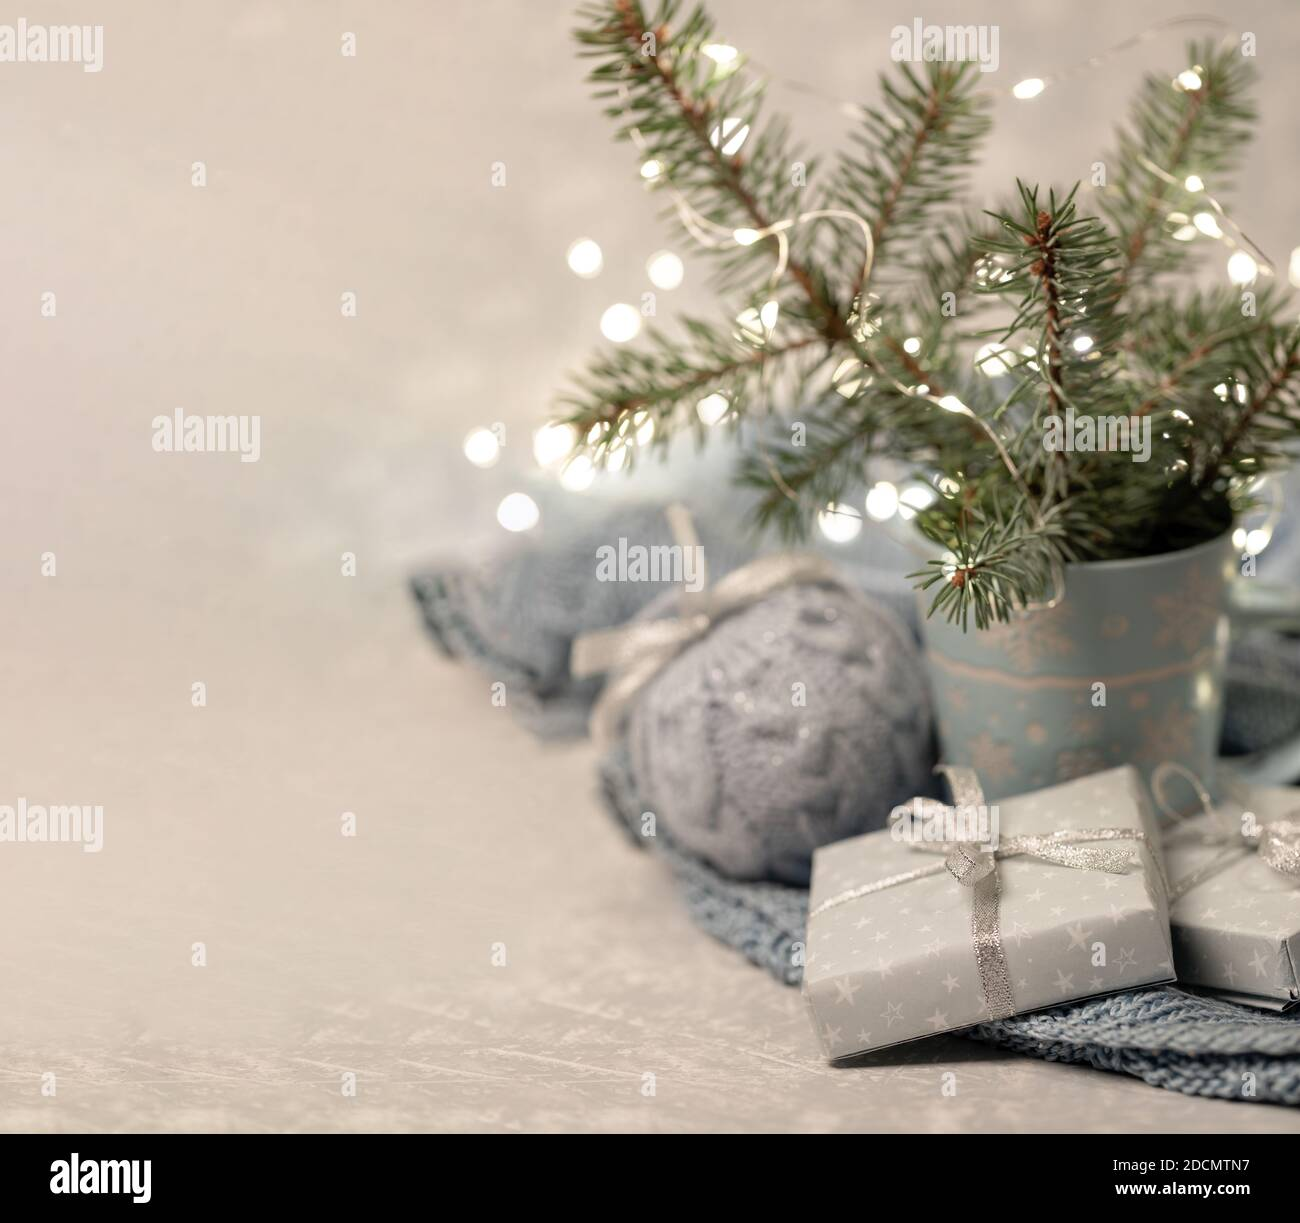 Cozy Winter Christmas Composition With Fir Branches In Mug Xmas Lights Diy Gift Boxes Knitted Xmas Ball Warm Homely Danish Hygge Concept Hugge A Stock Photo Alamy